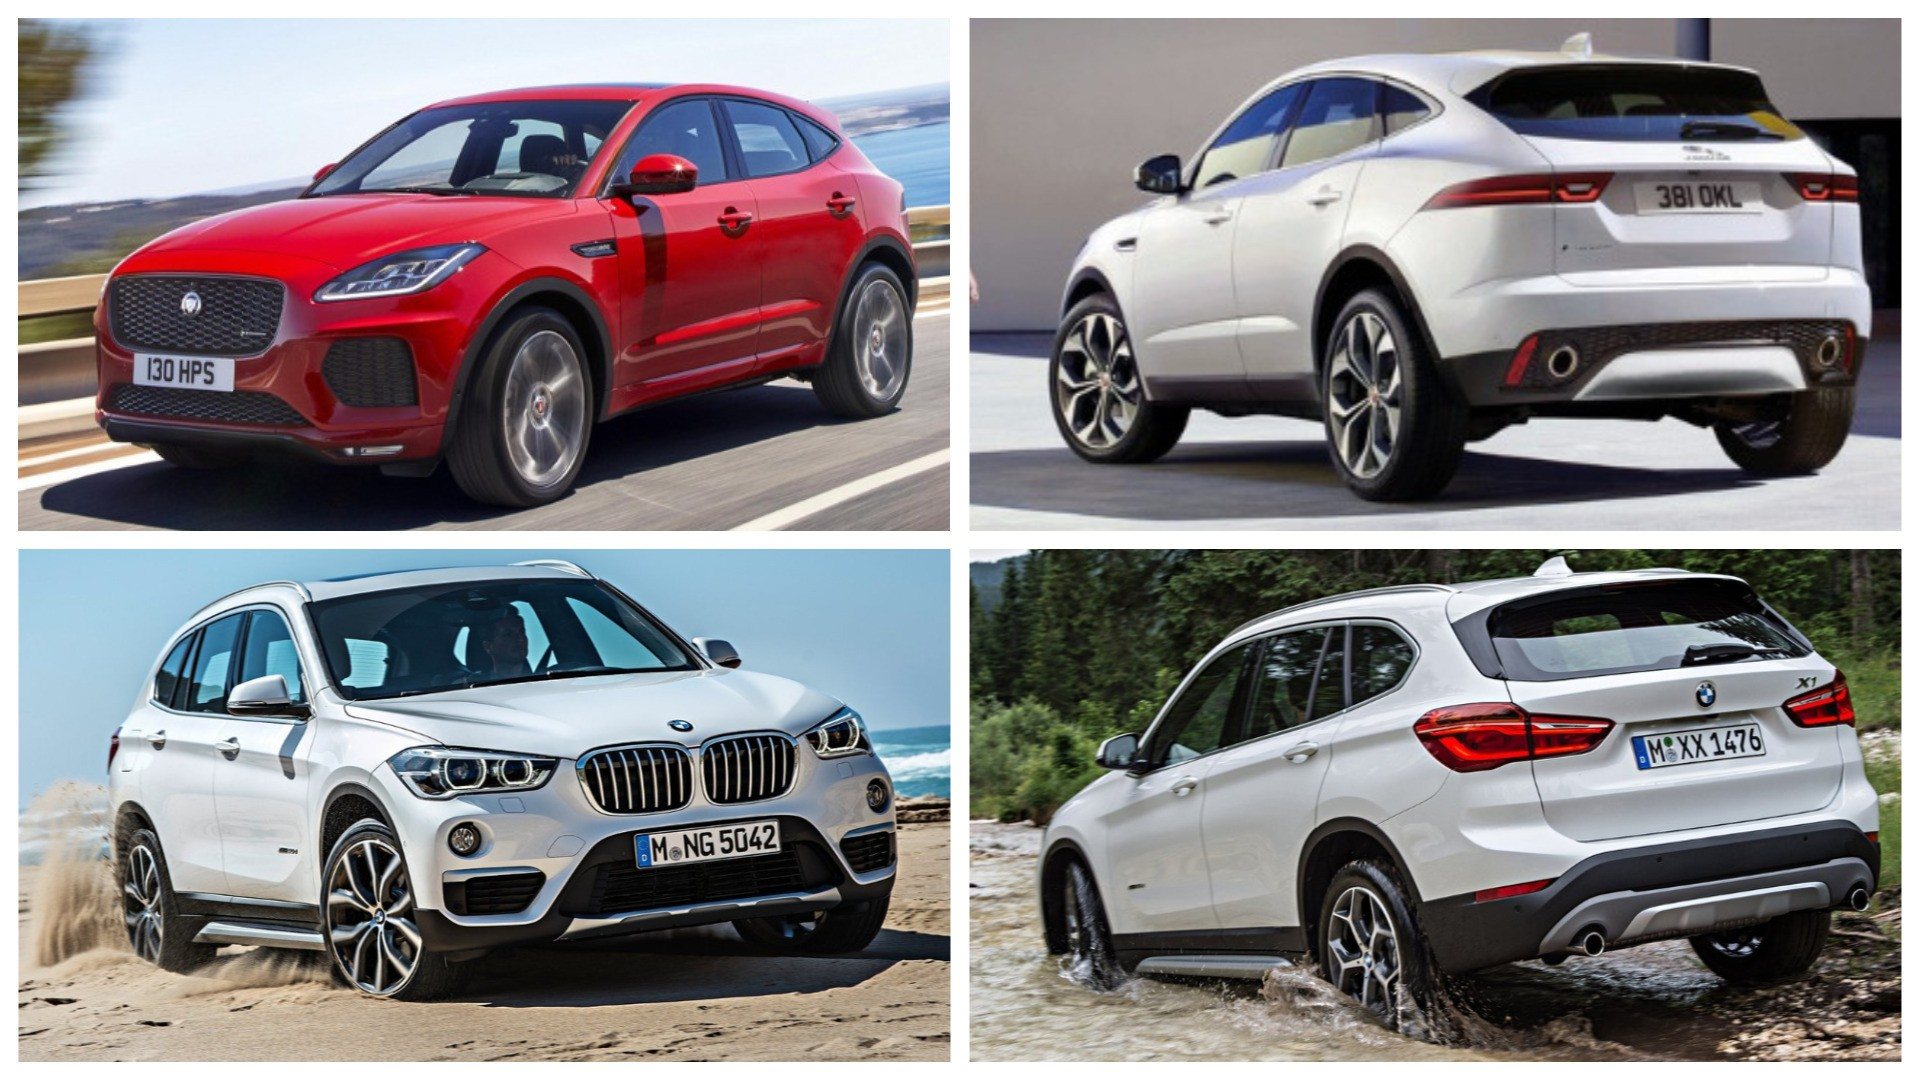 2018 jaguar e pace vs bmw x1 photo comparison clash of crossovers autoevolution. Black Bedroom Furniture Sets. Home Design Ideas